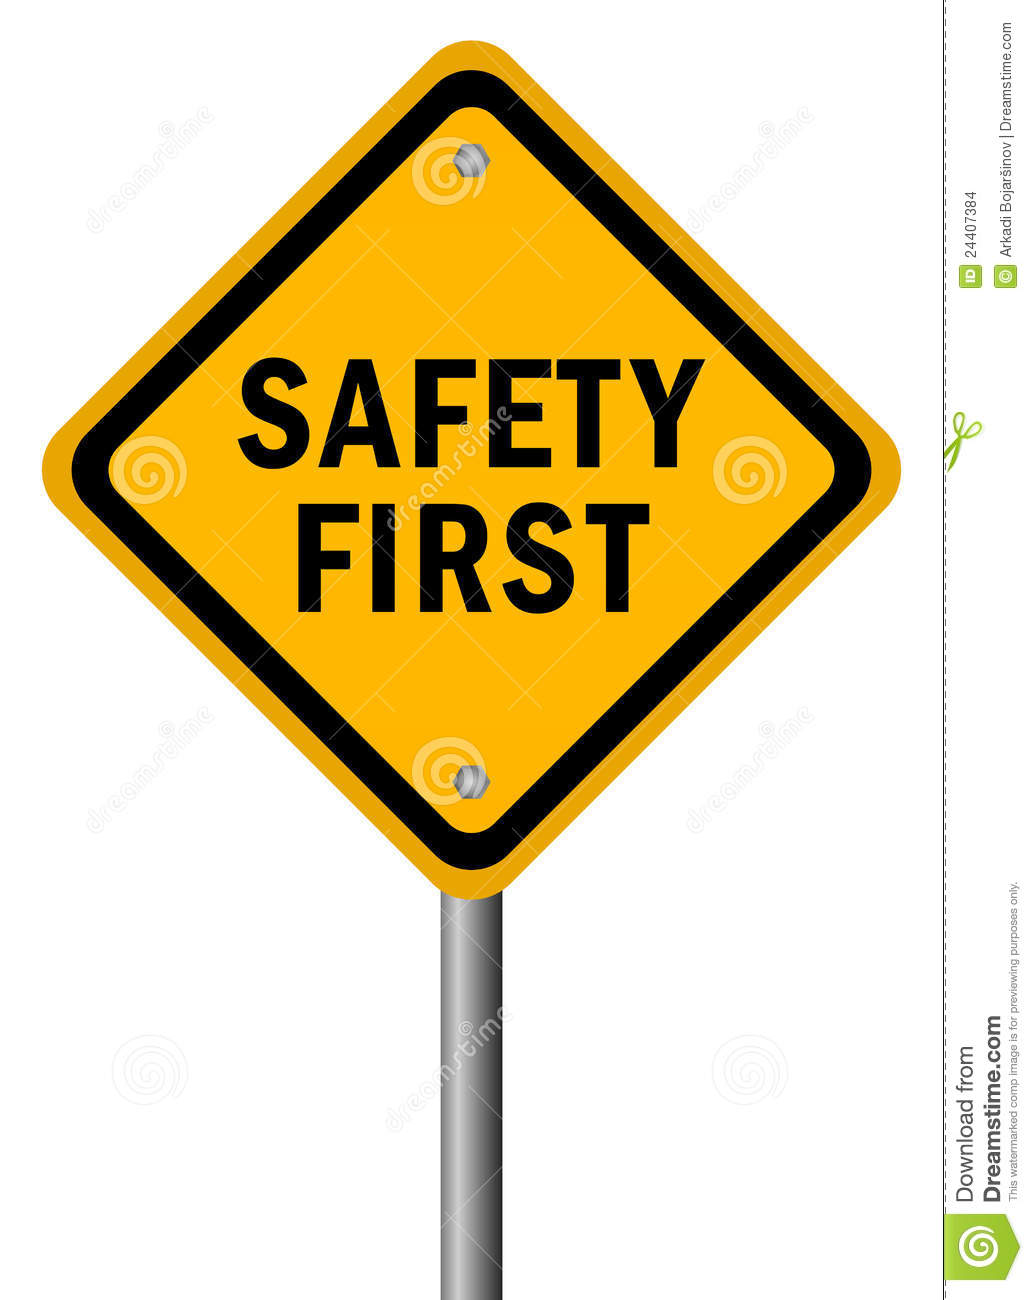 Safety First Clipart Safety First Sign